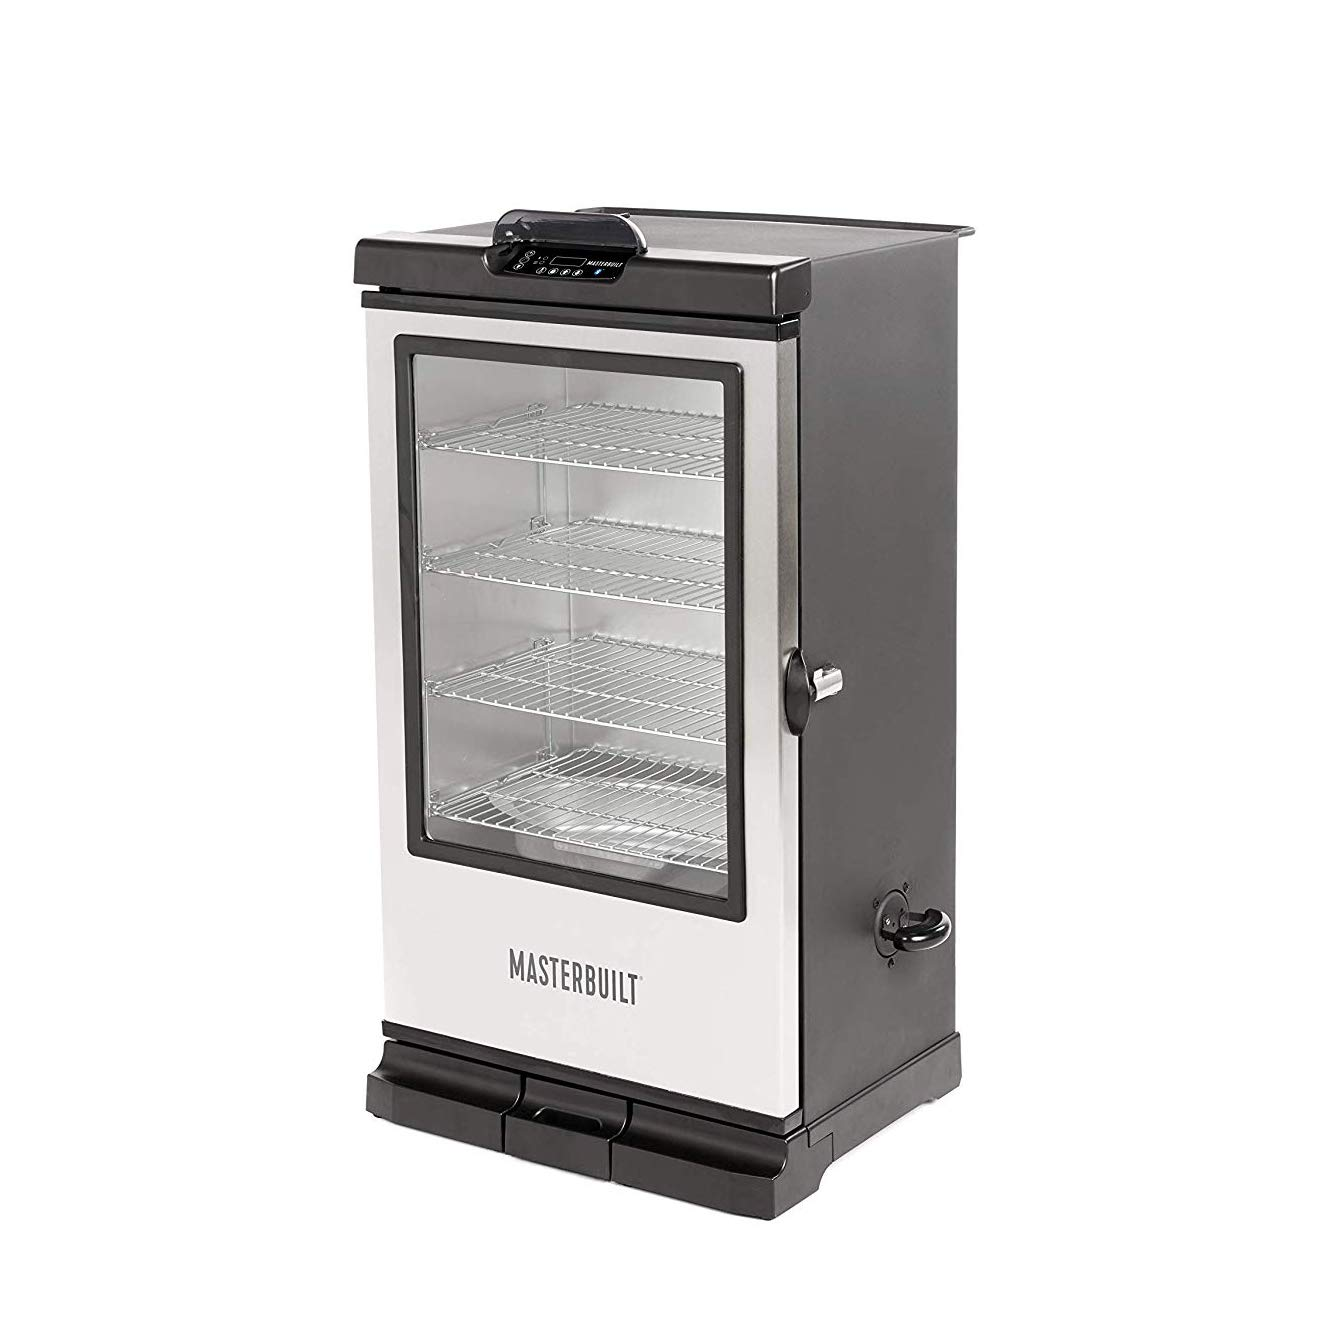 Masterbuilt MB20076718 Bluetooth Electric Smoker 240G Digital, Black with SS Door by Masterbuilt